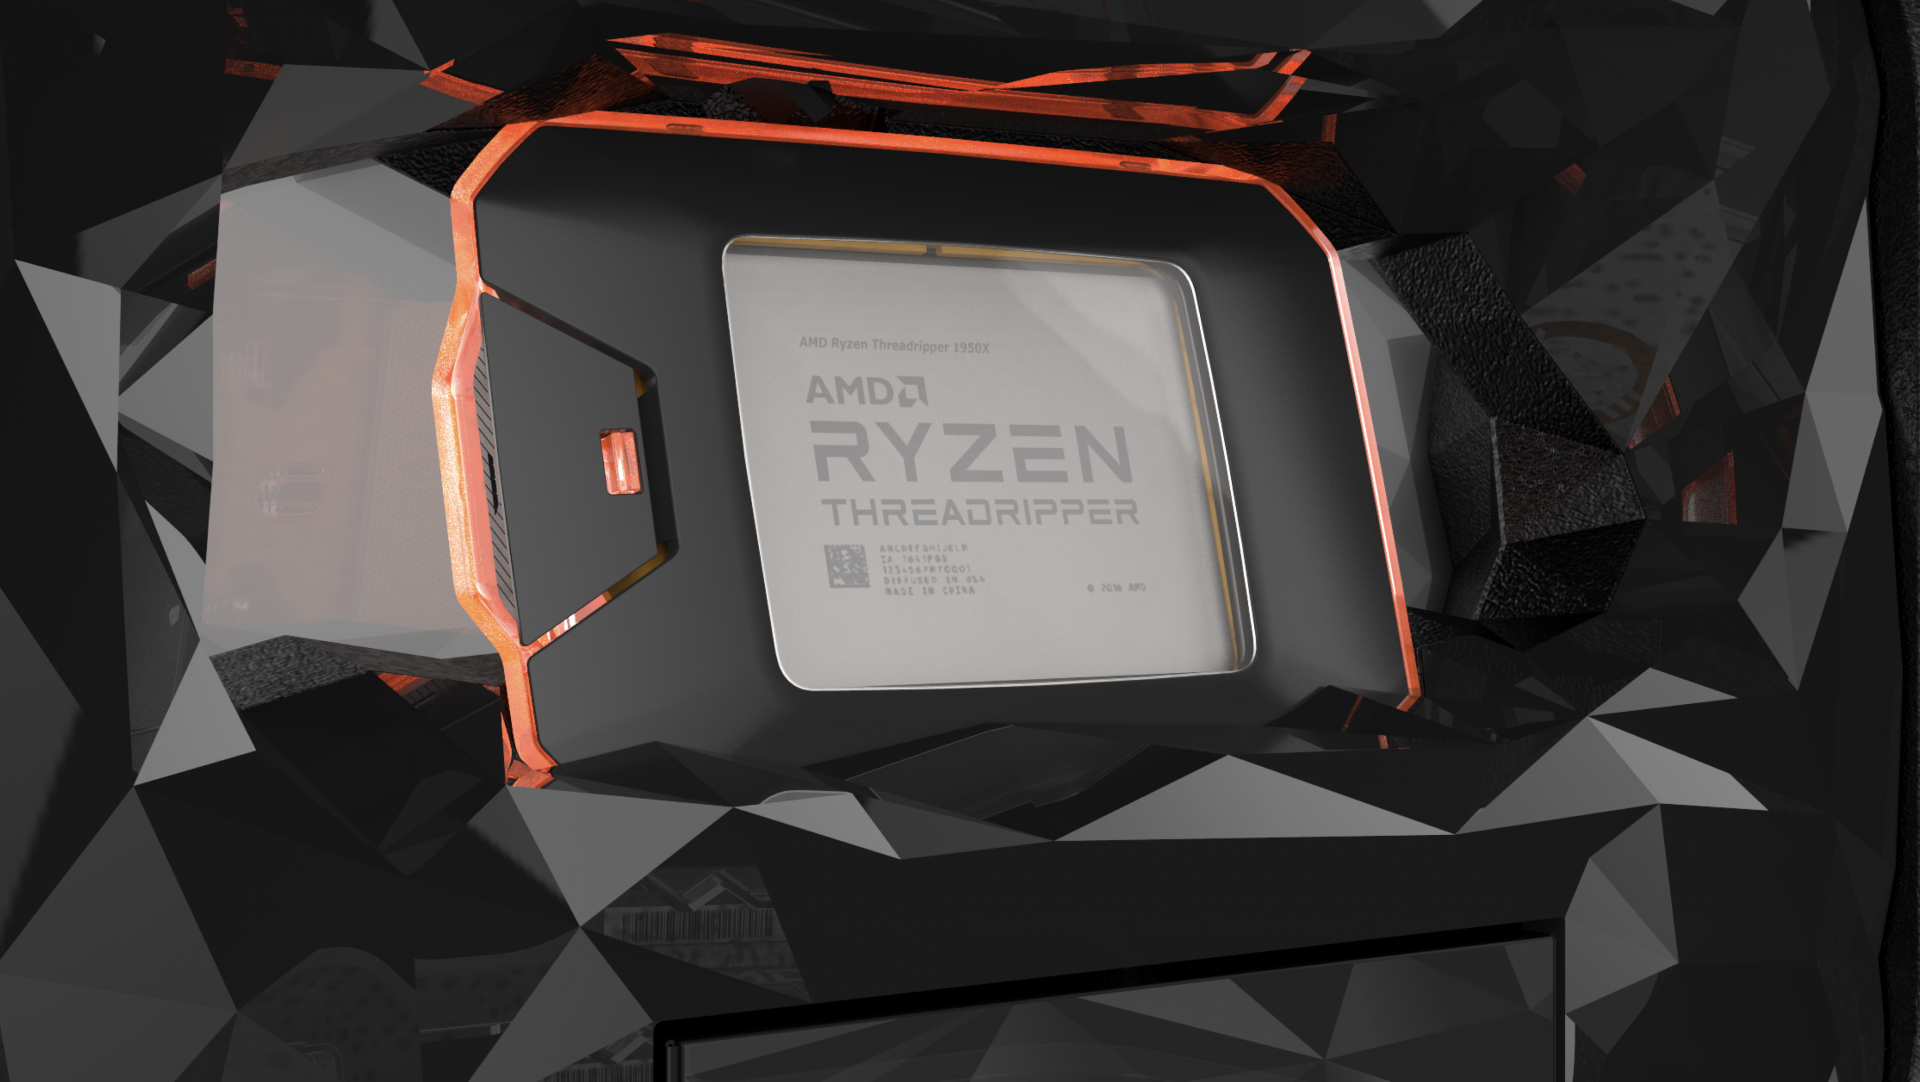 Threadripper 2.0 unboxing